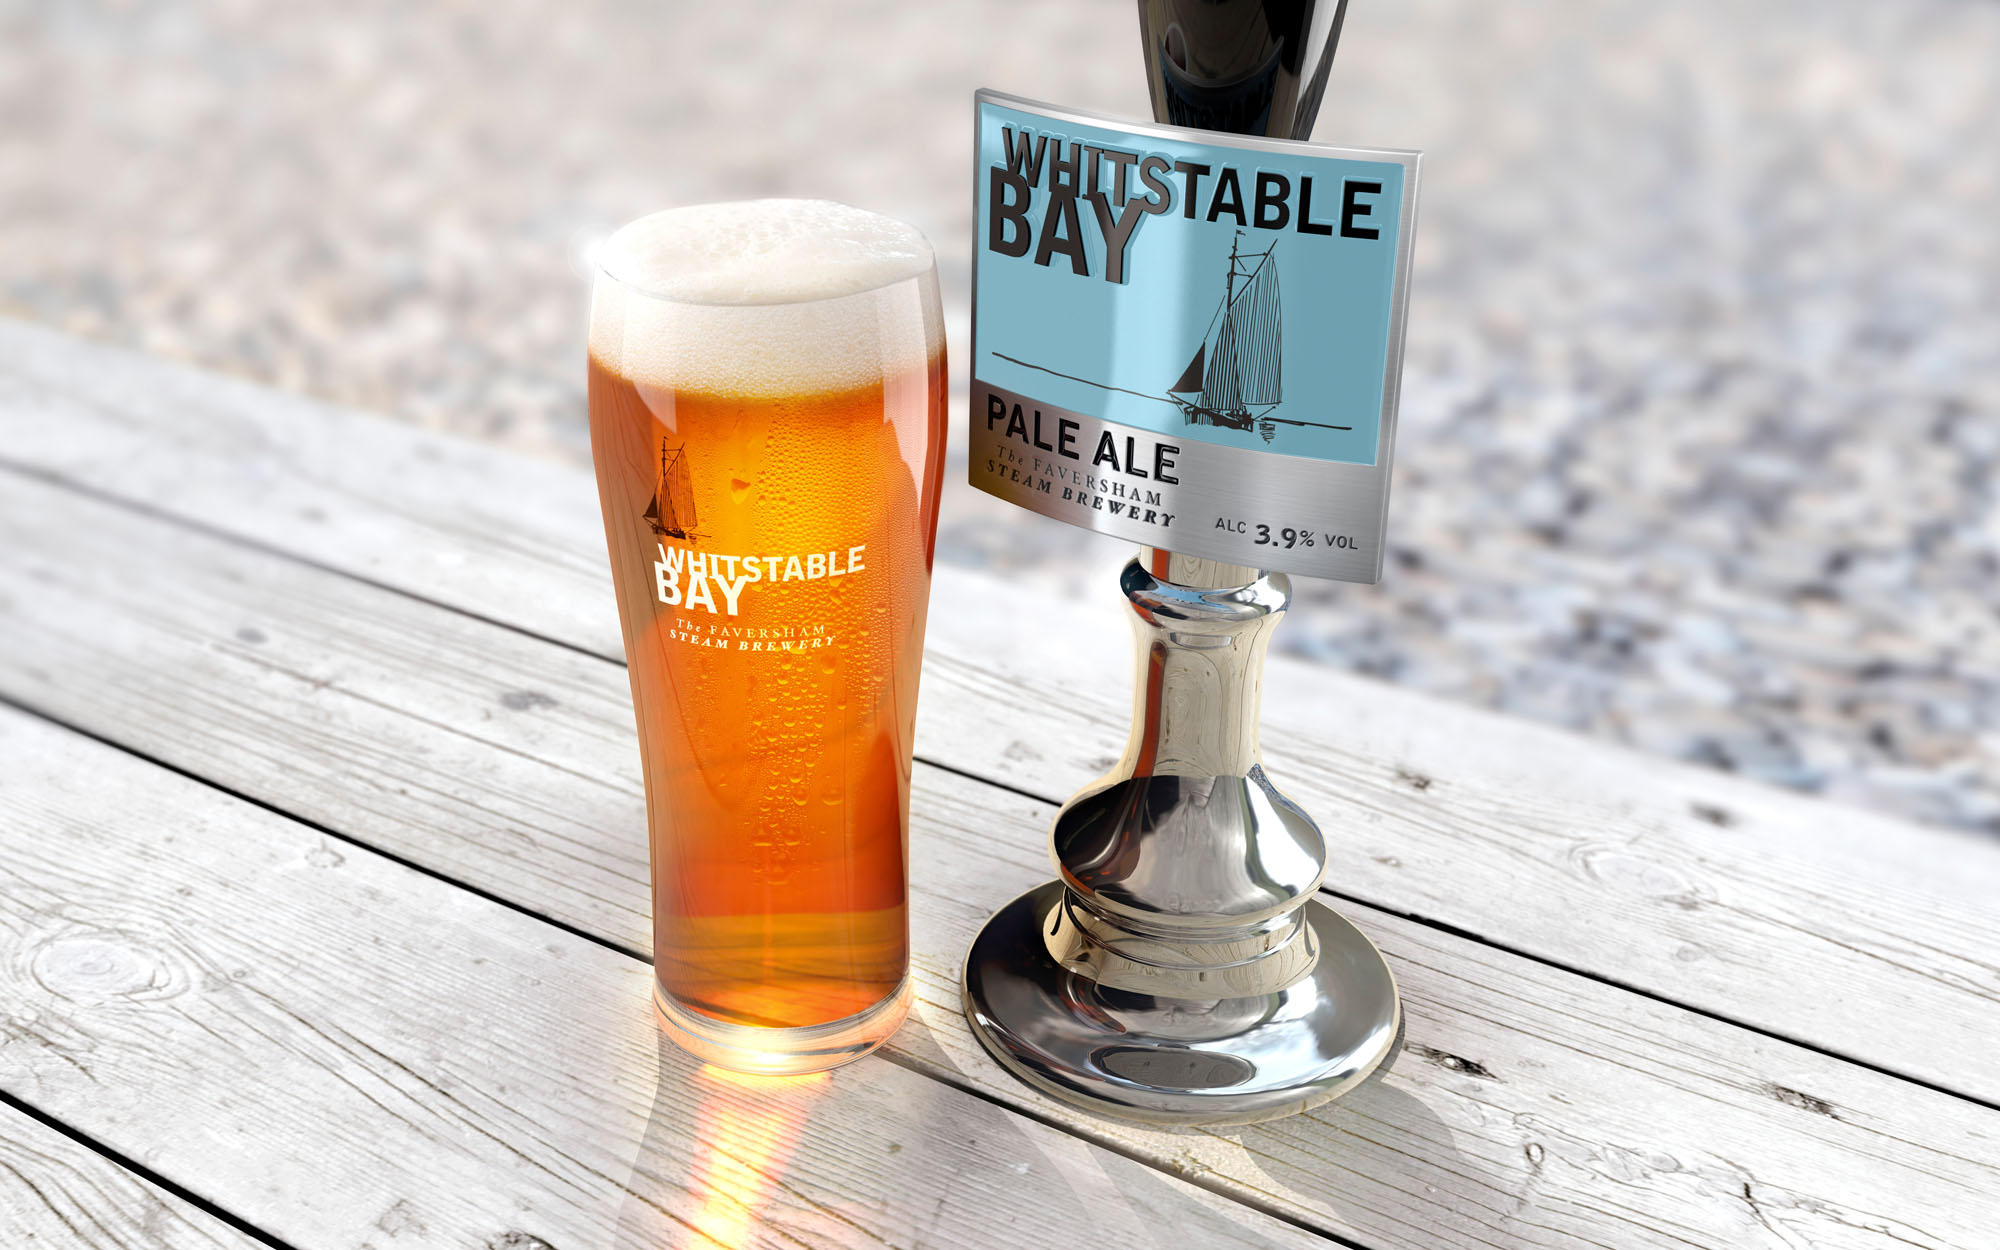 Whitstable bay pale ale shepherd neame sciox Image collections